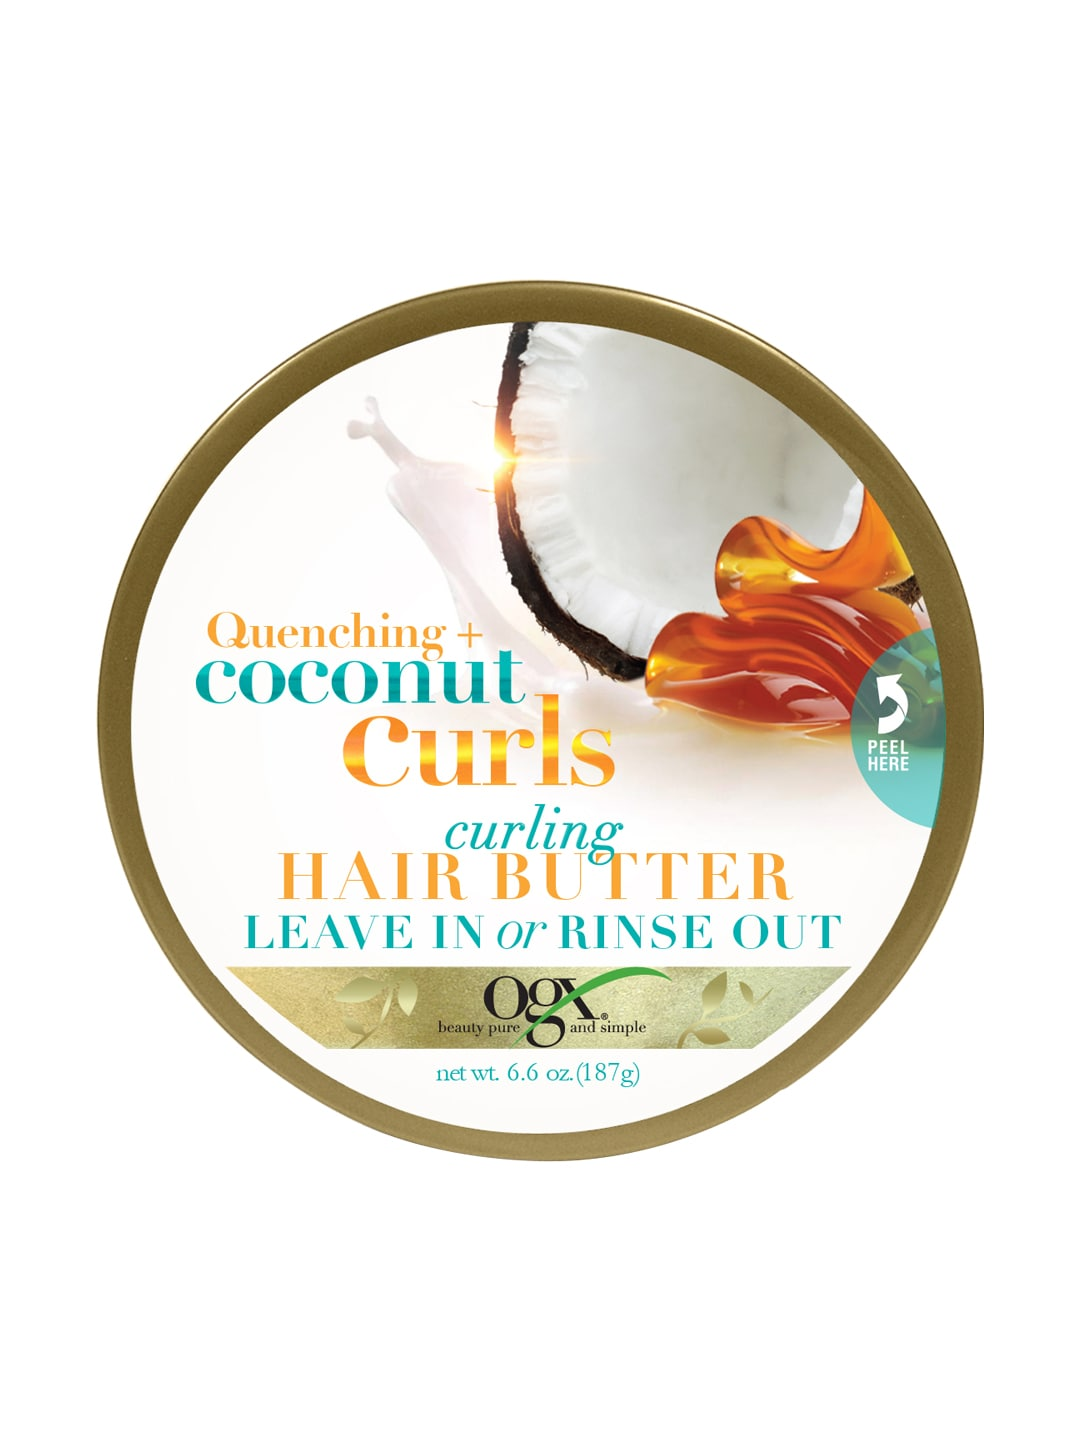 OGX Unisex Coconut Curls Curling Hair Butter image